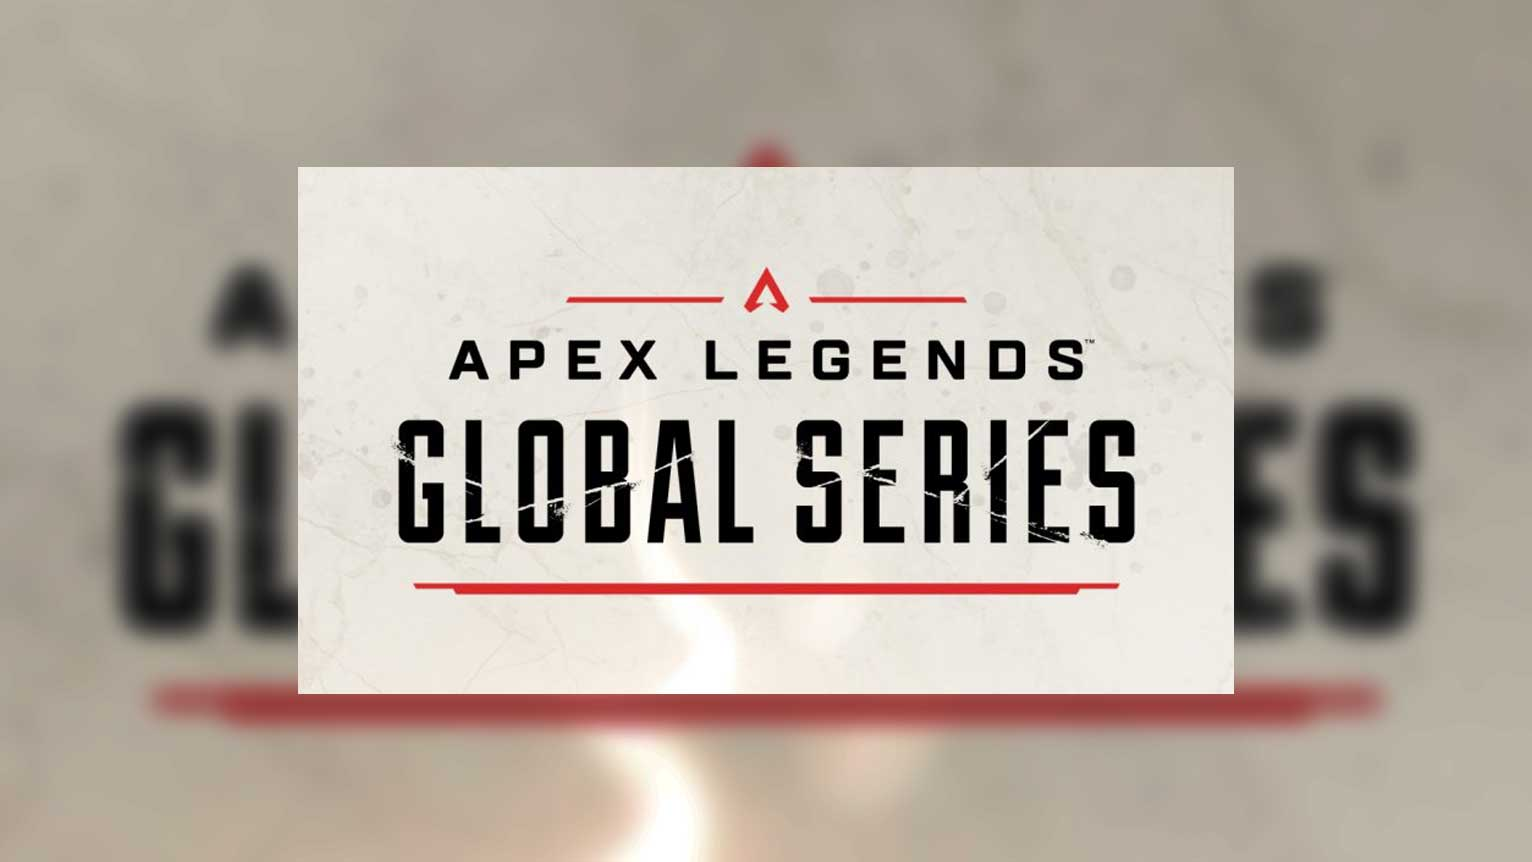 apex gs featured image annoucement blog.jpg.adapt .crop16x9.431p babt